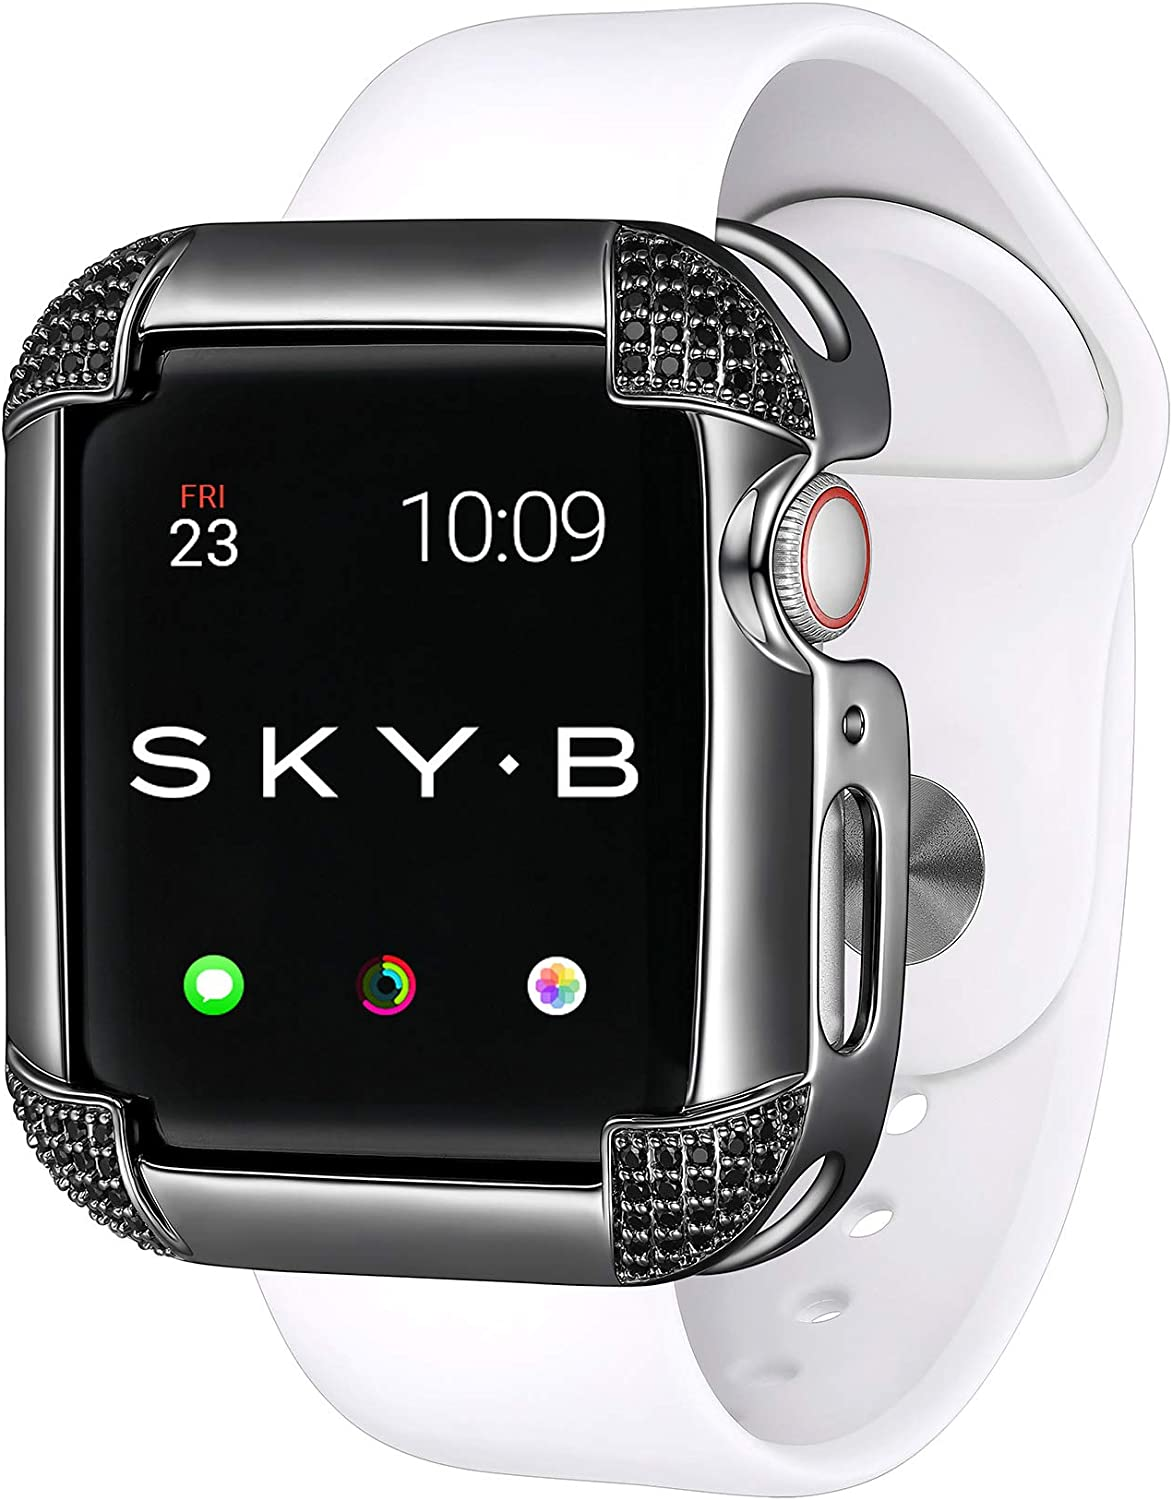 Skyb Pave Corners Black Protective Jewelry Case For Apple Watch Series 1 2 3 4 5 6 Se Devices 40mm